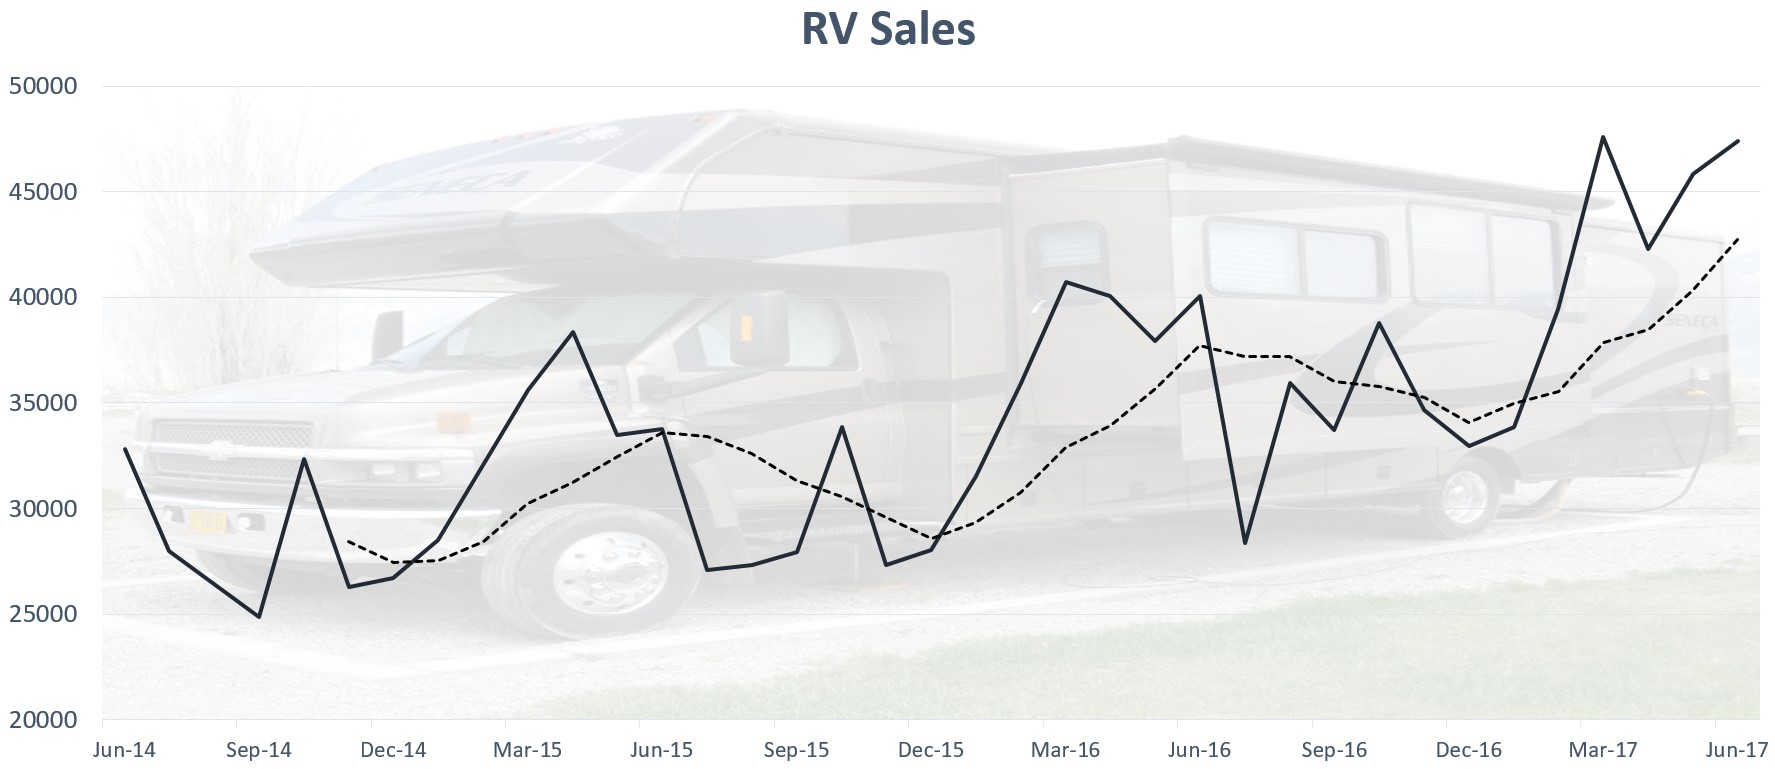 RV Sales Have Skyrocketed